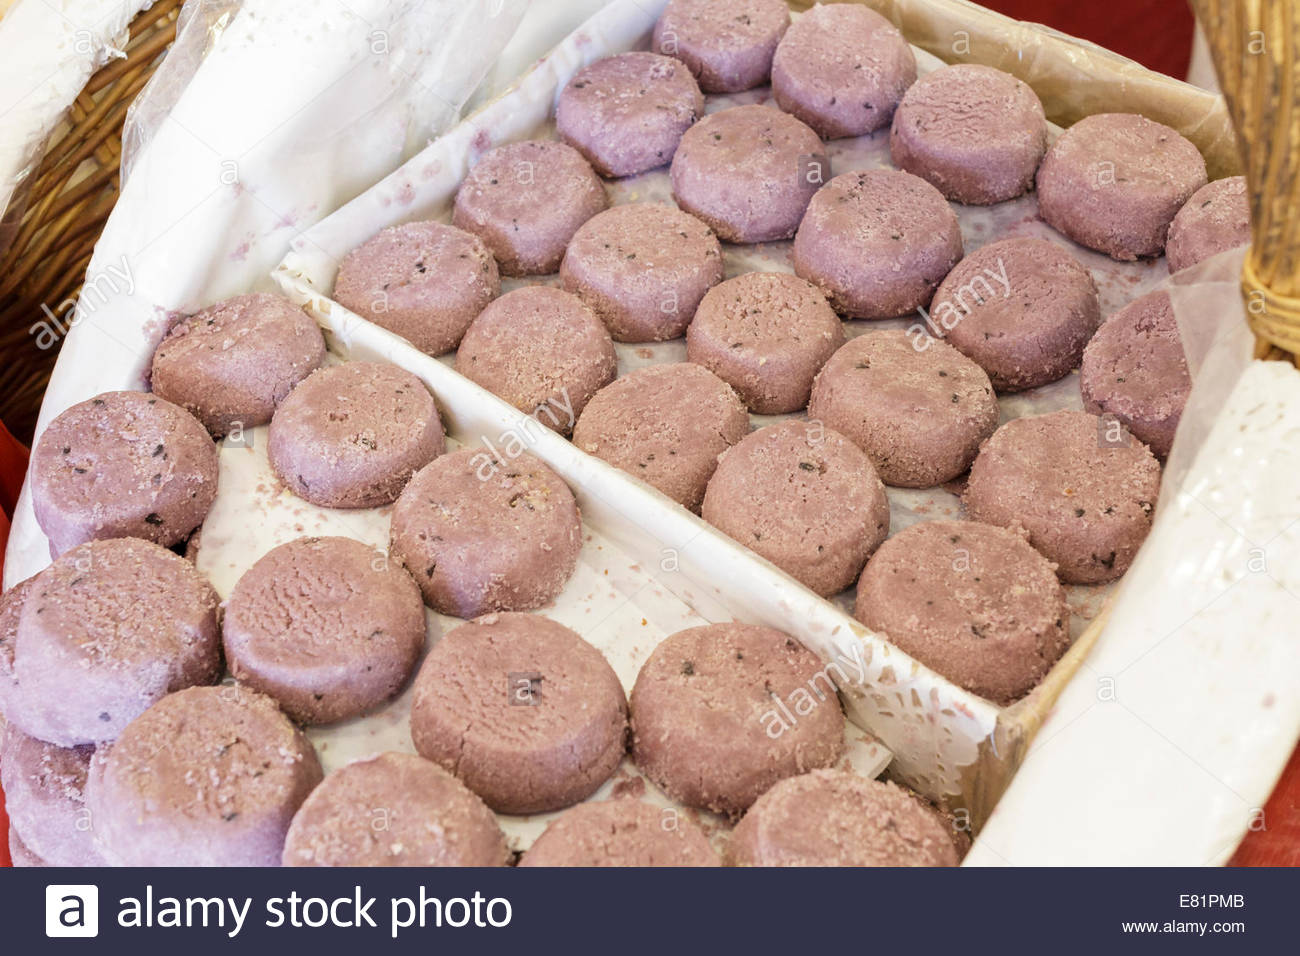 Purple Biscuits Stock Photo Royalty Free Image 73798491